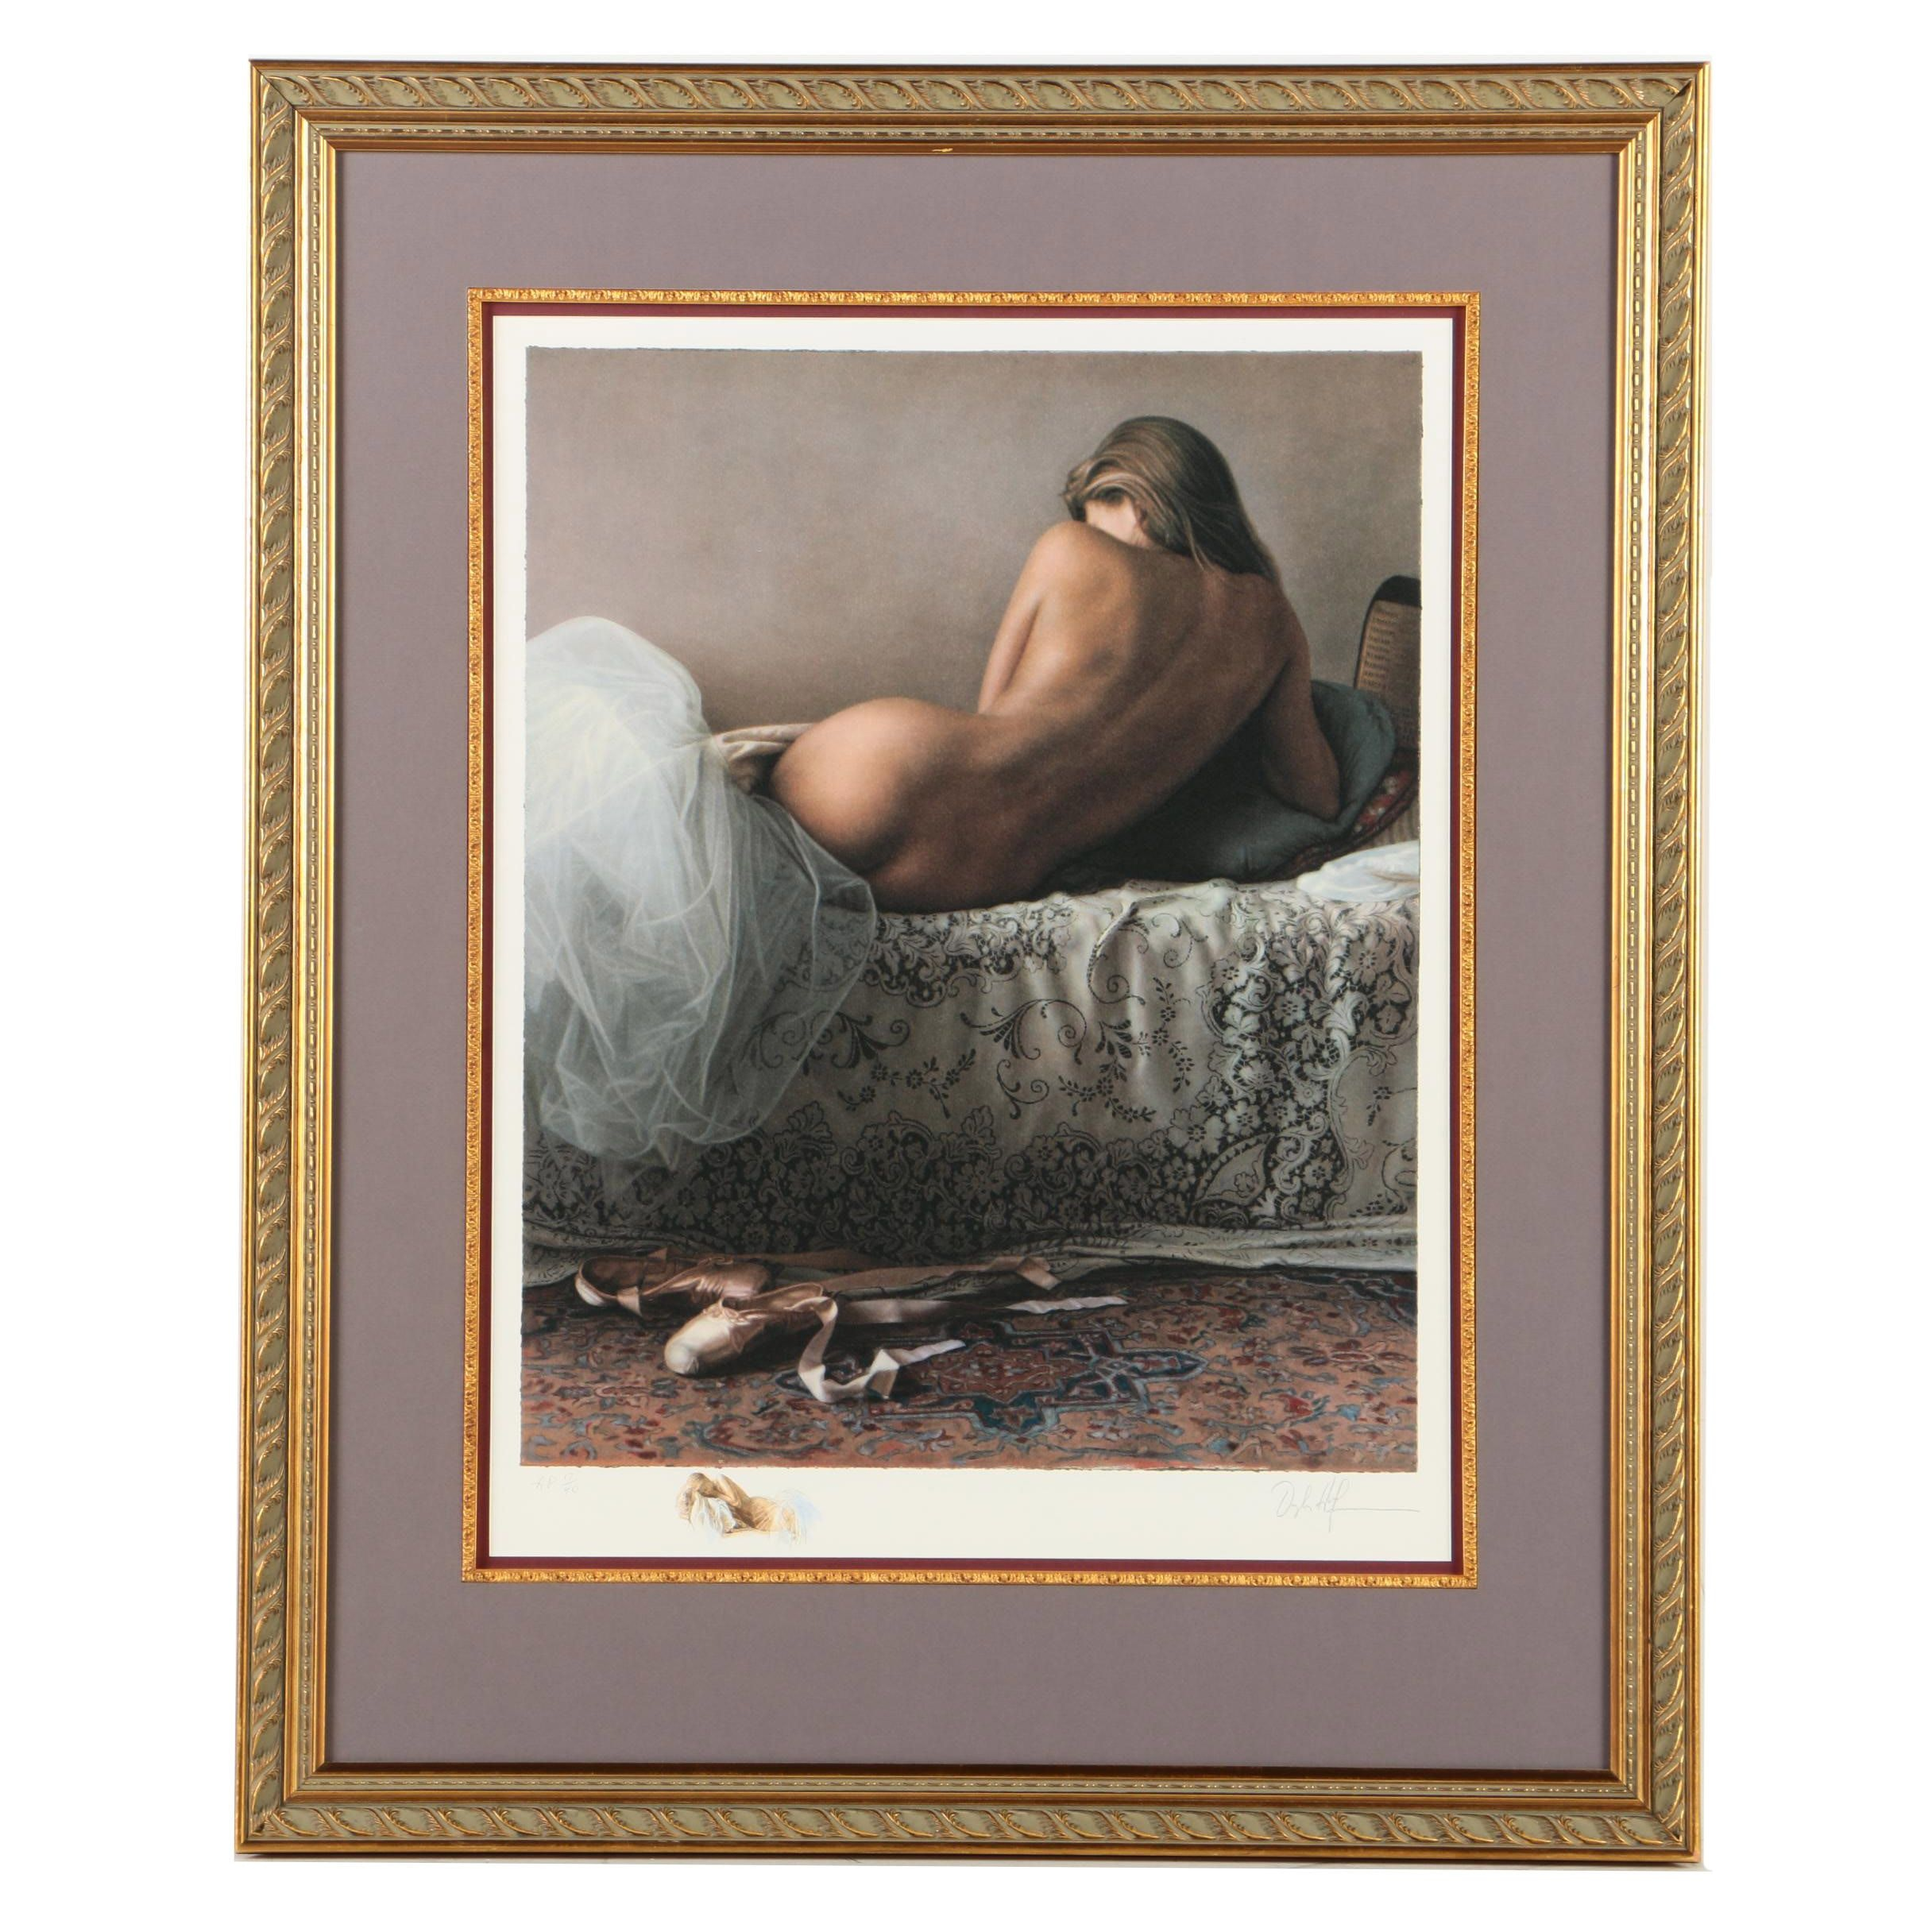 Douglas Hoffman Limited Edition Giclee Print on Paper of a Reclining Nude